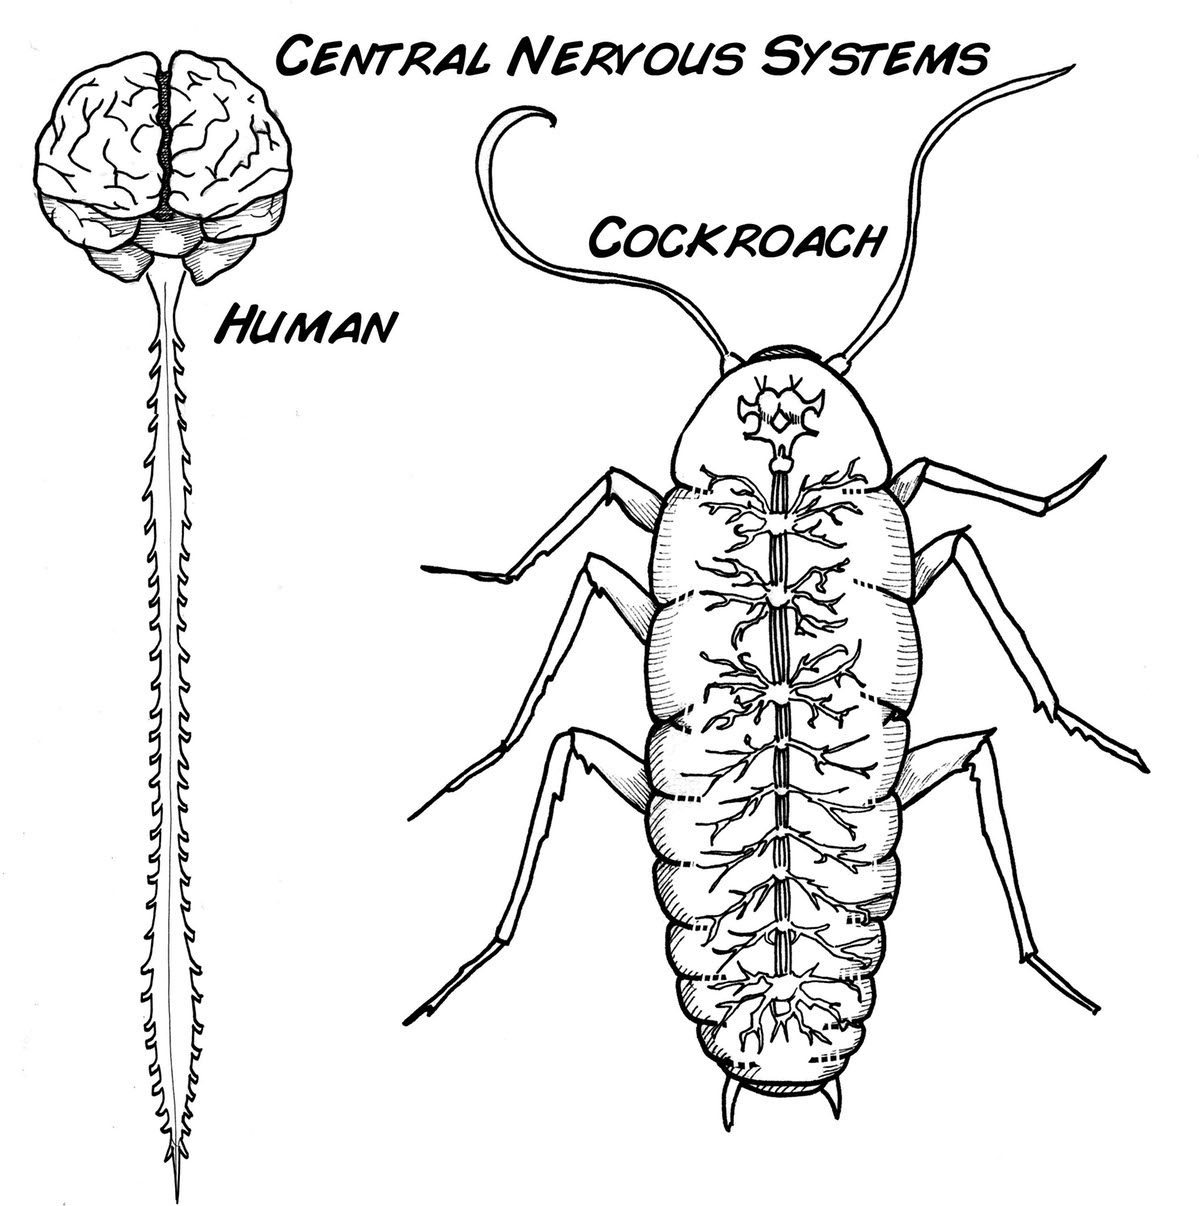 Coloring Pages Nervous System Coloring Pages nervous system coloring pages eassume com experiment wirelessly control a cyborg cockroach